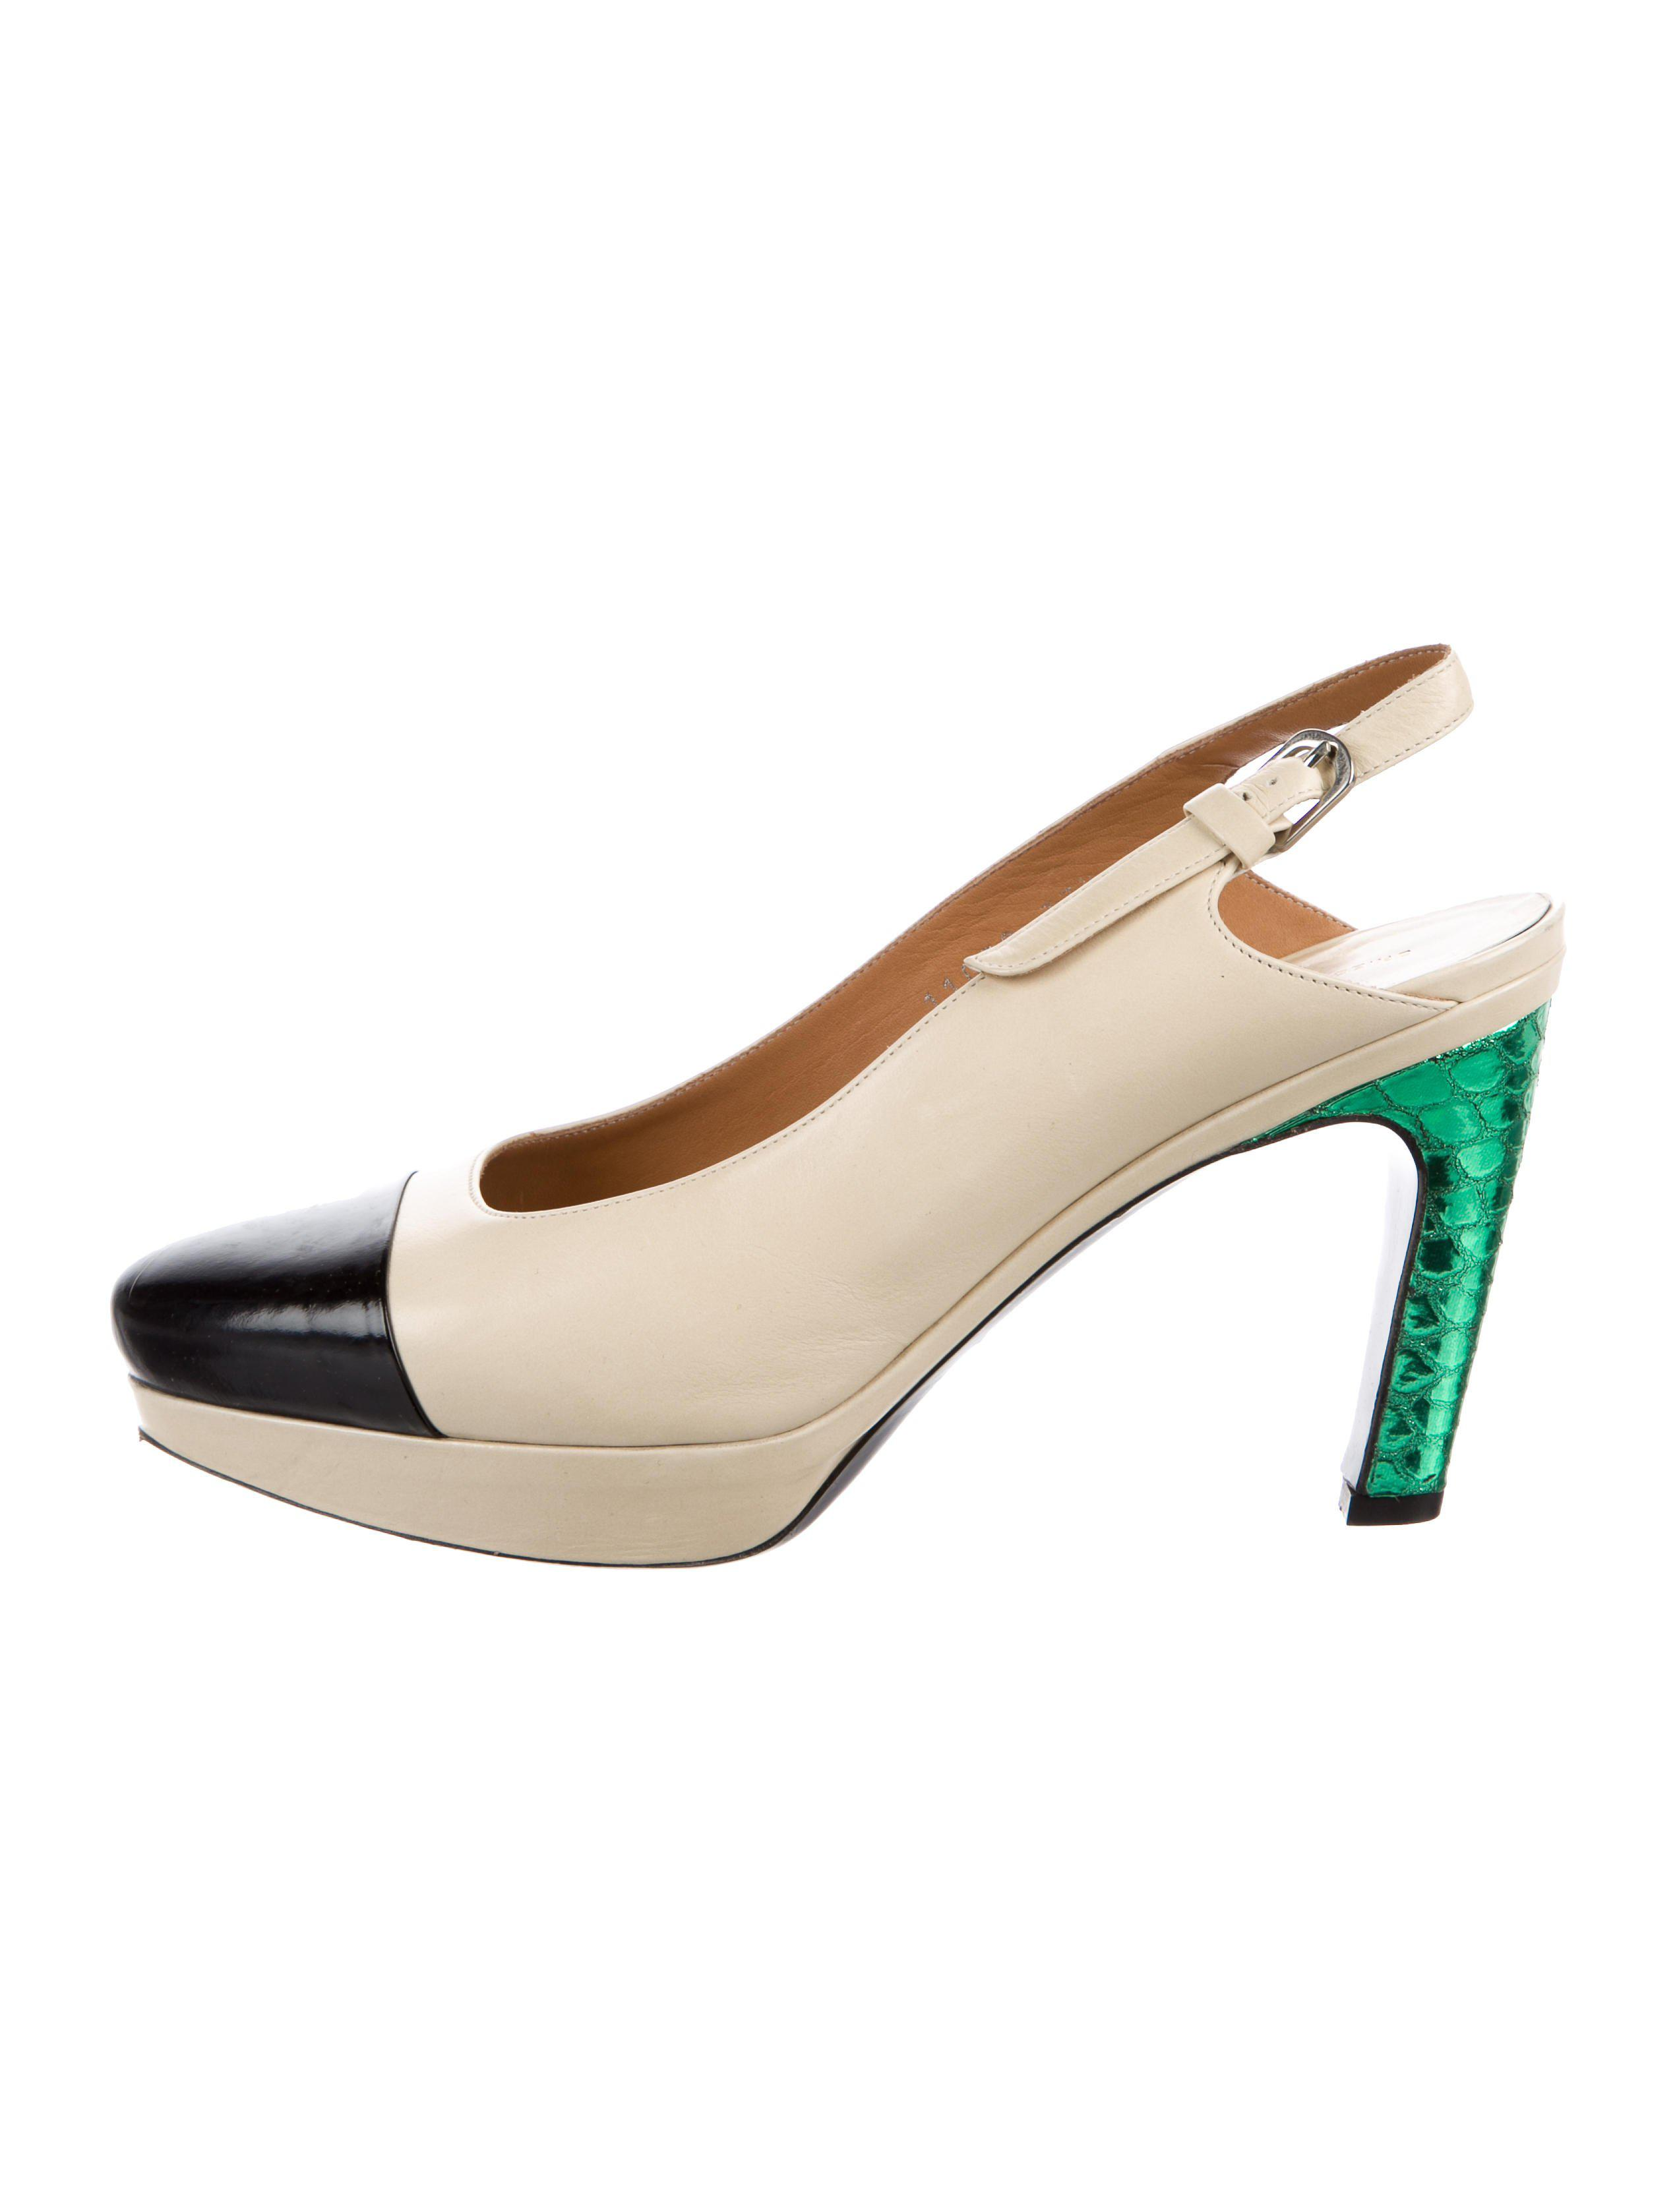 4f8bfd8ab6aebb Lyst - Dries Van Noten Leather Slingback Pumps Tan in Natural